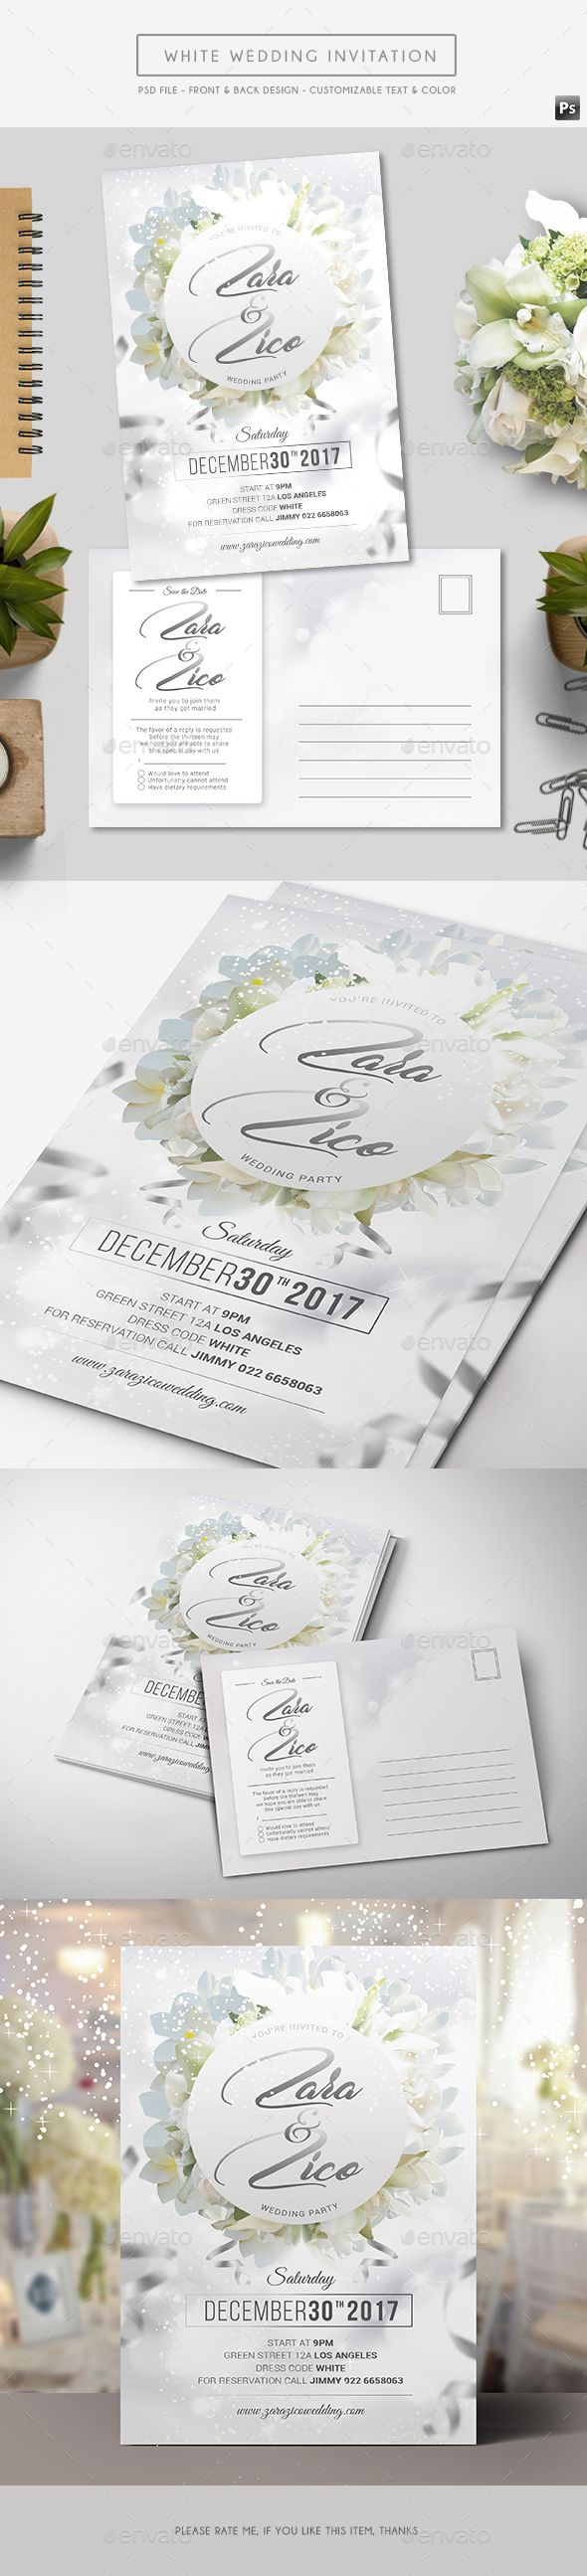 White Wedding Invitation | Pinterest | Template, Edit text and Weddings